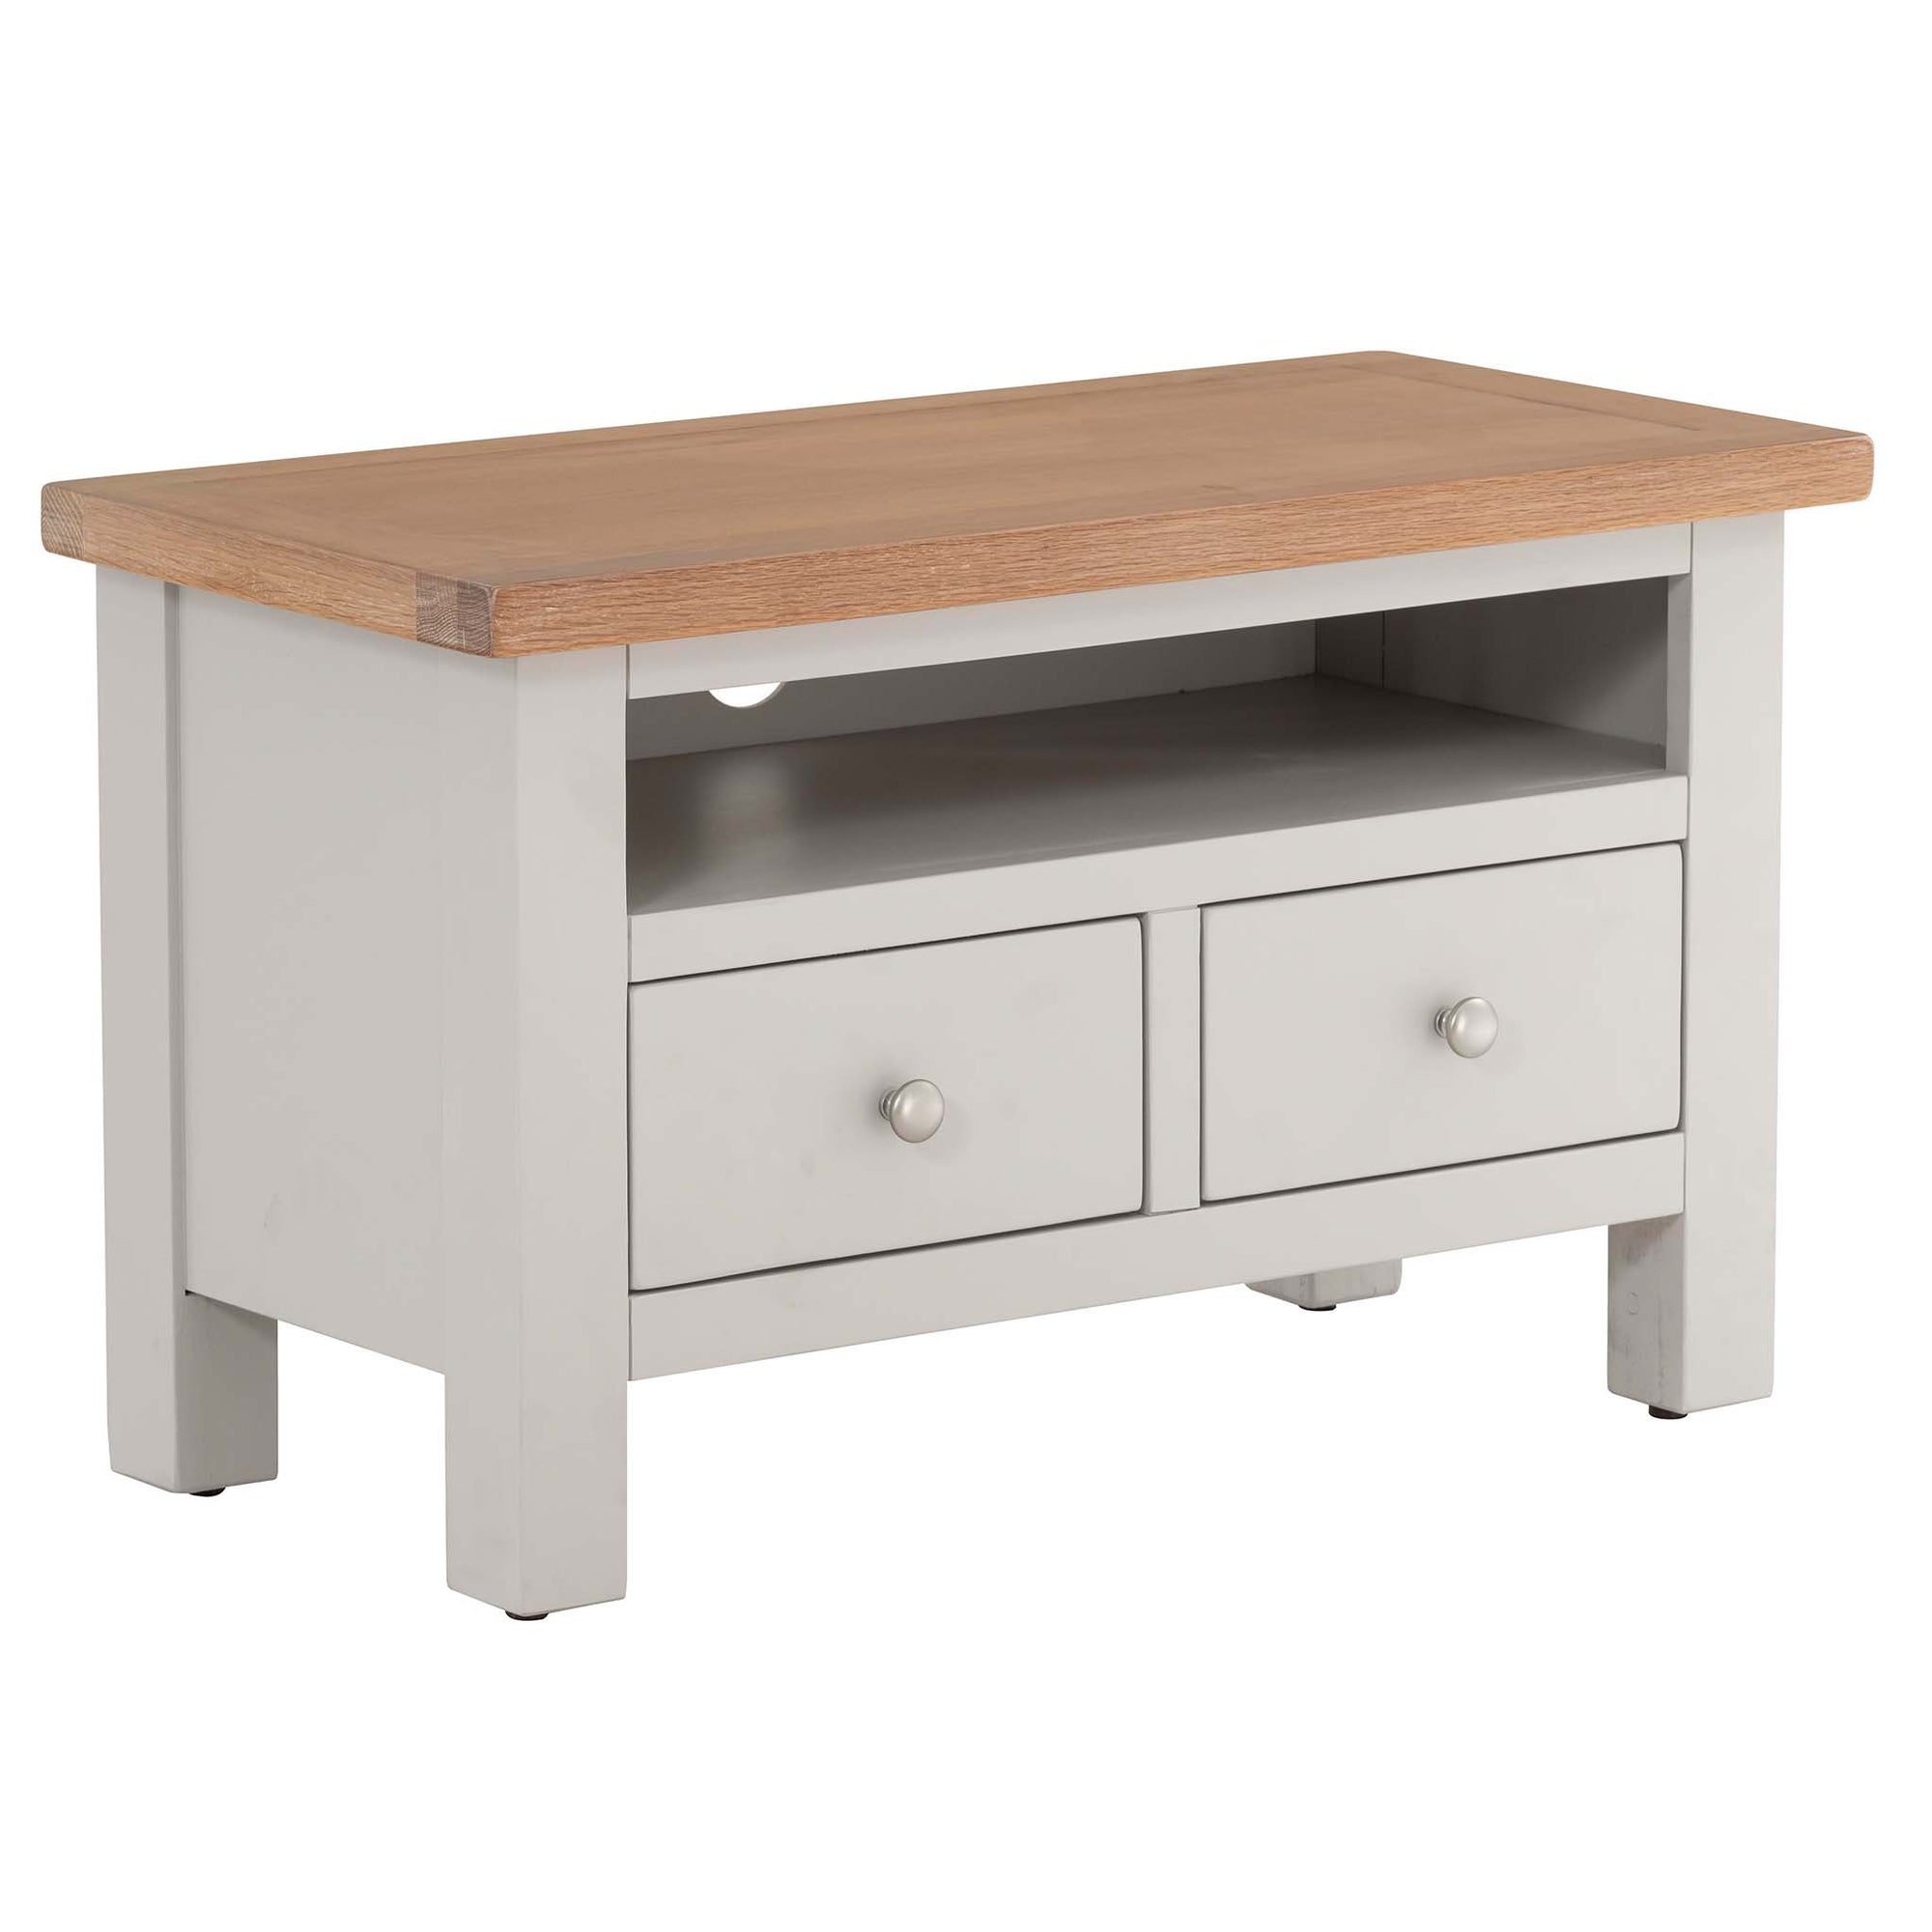 Charlestown Grey Small TV Stand with Oak Top from Roseland Furniture